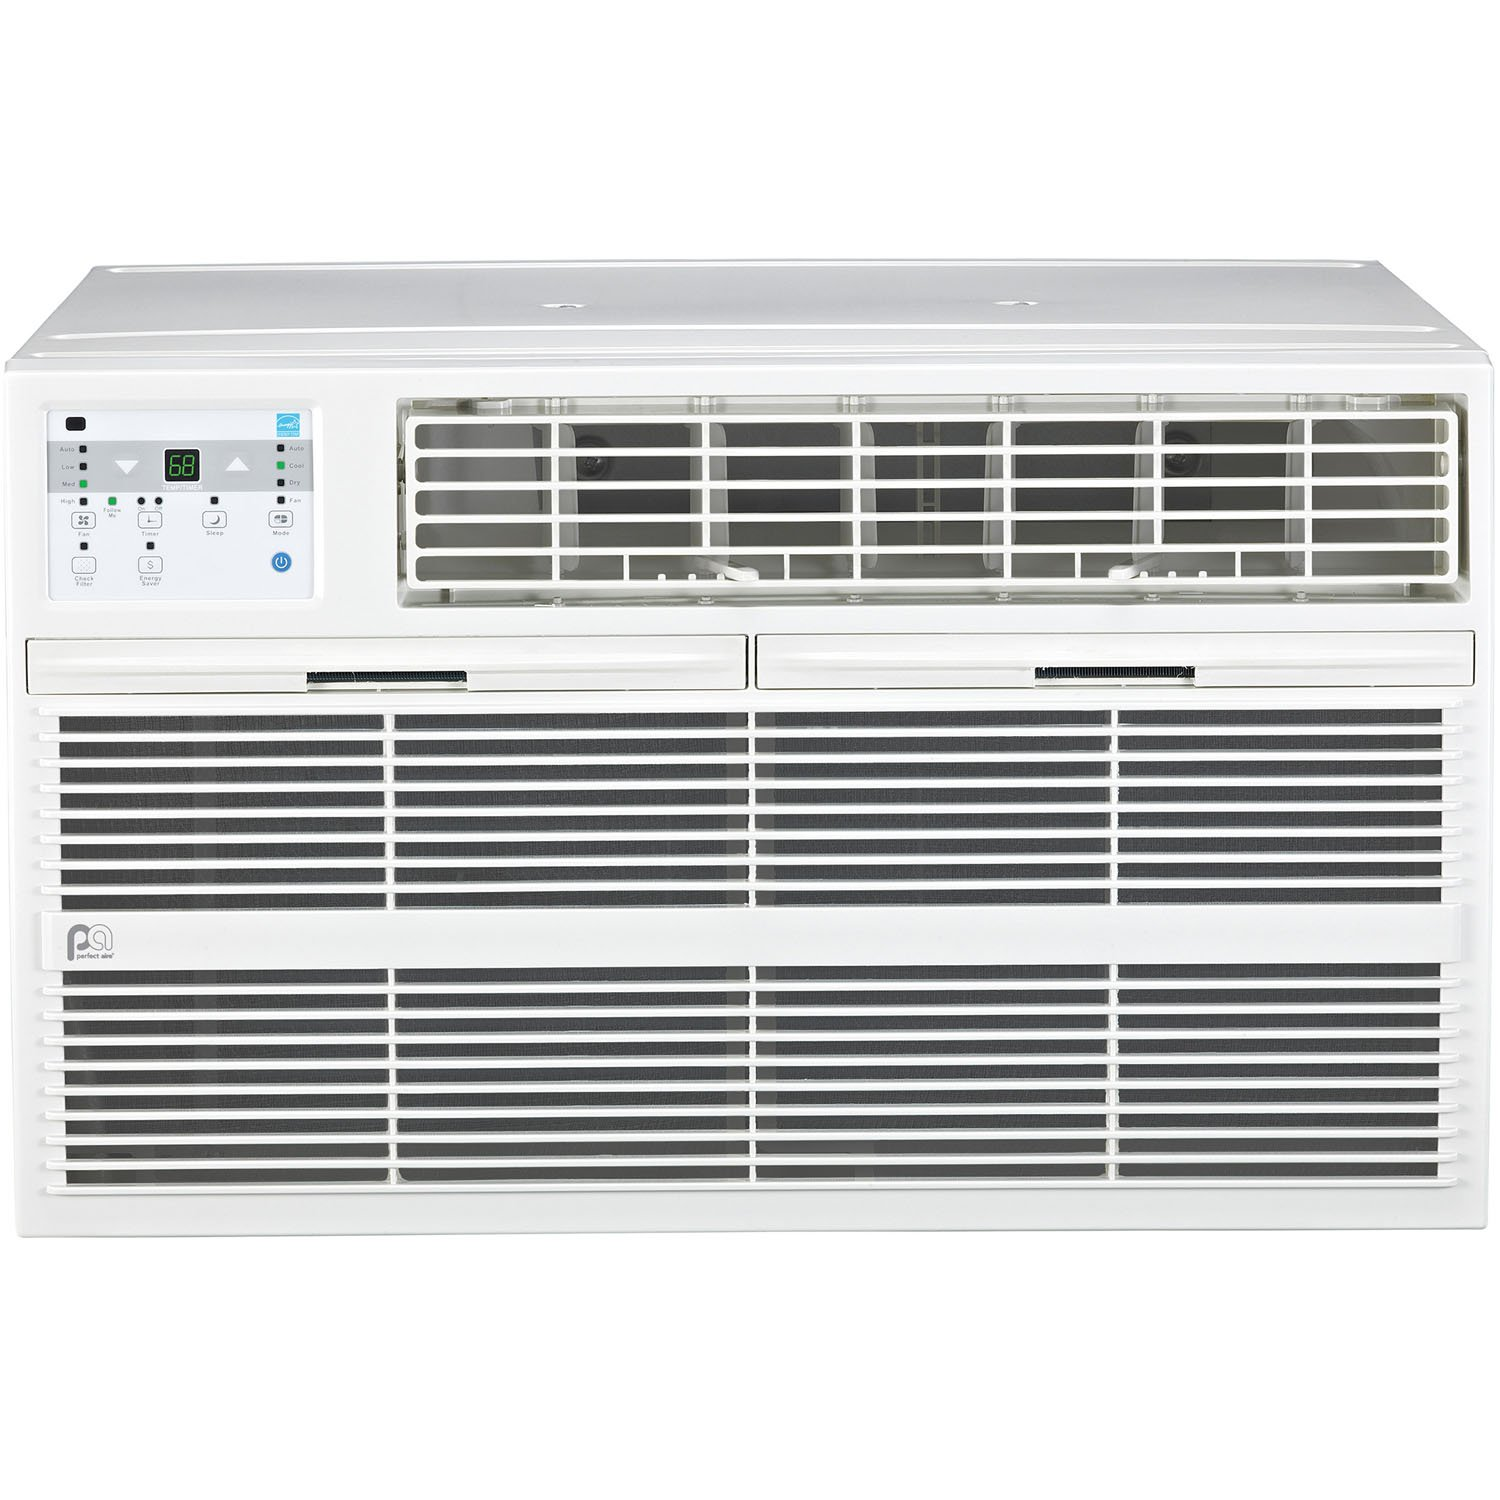 Perfect Aire 4PATW10002 10,000/9,800 BTU Thru-the-Wall Air Conditioner with Remote Control, EER 10.6, 400-450 Sq. Ft. Coverage